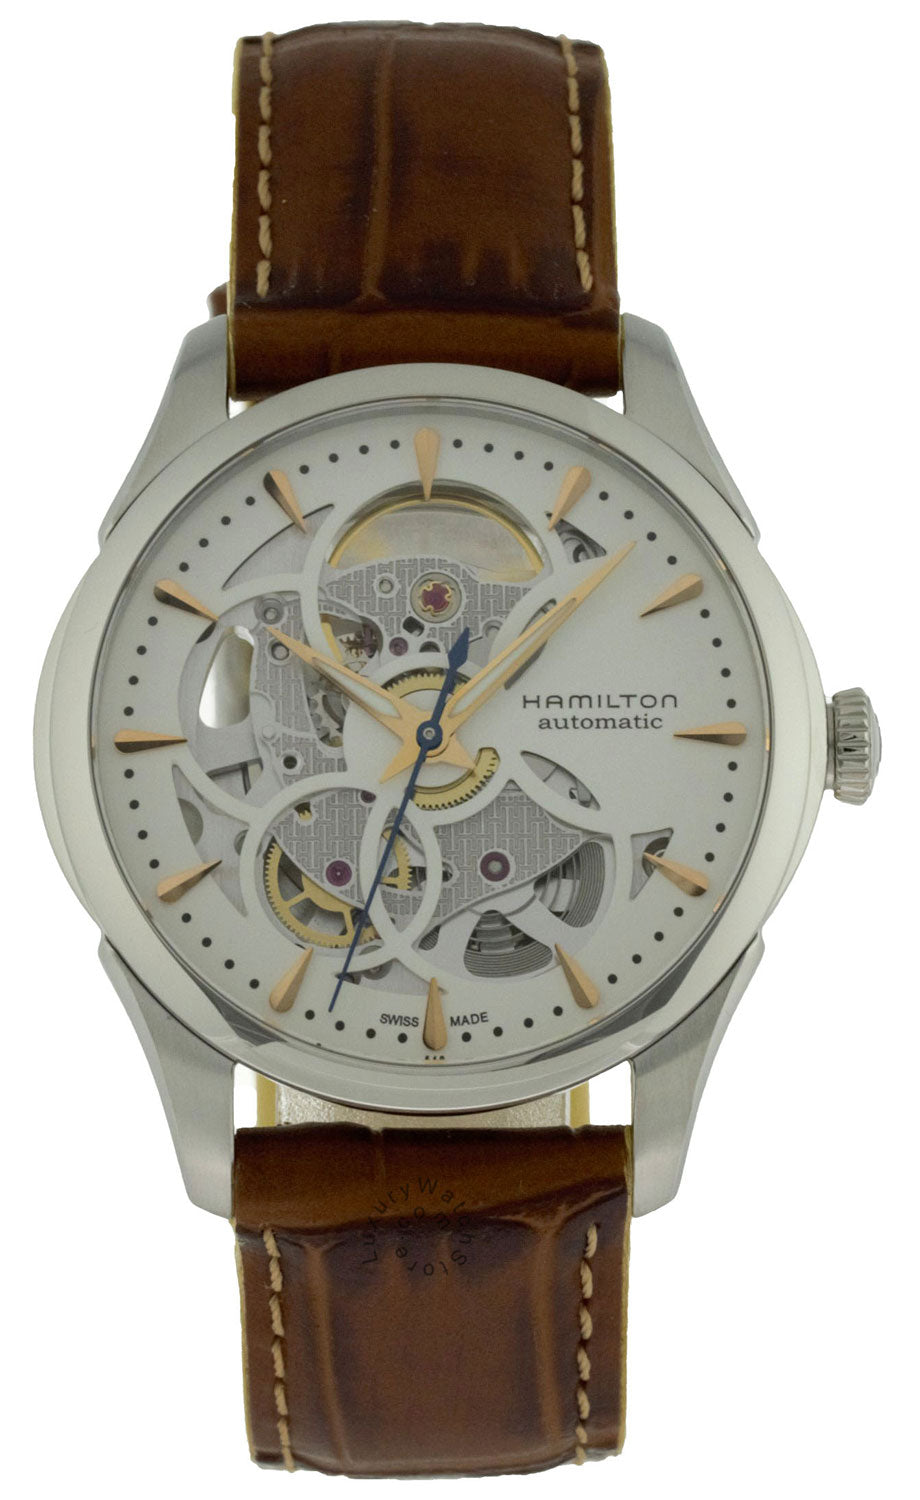 Hamilton Jazzmaster Viewmatic Skeleton Auto Leather Watch H32405551